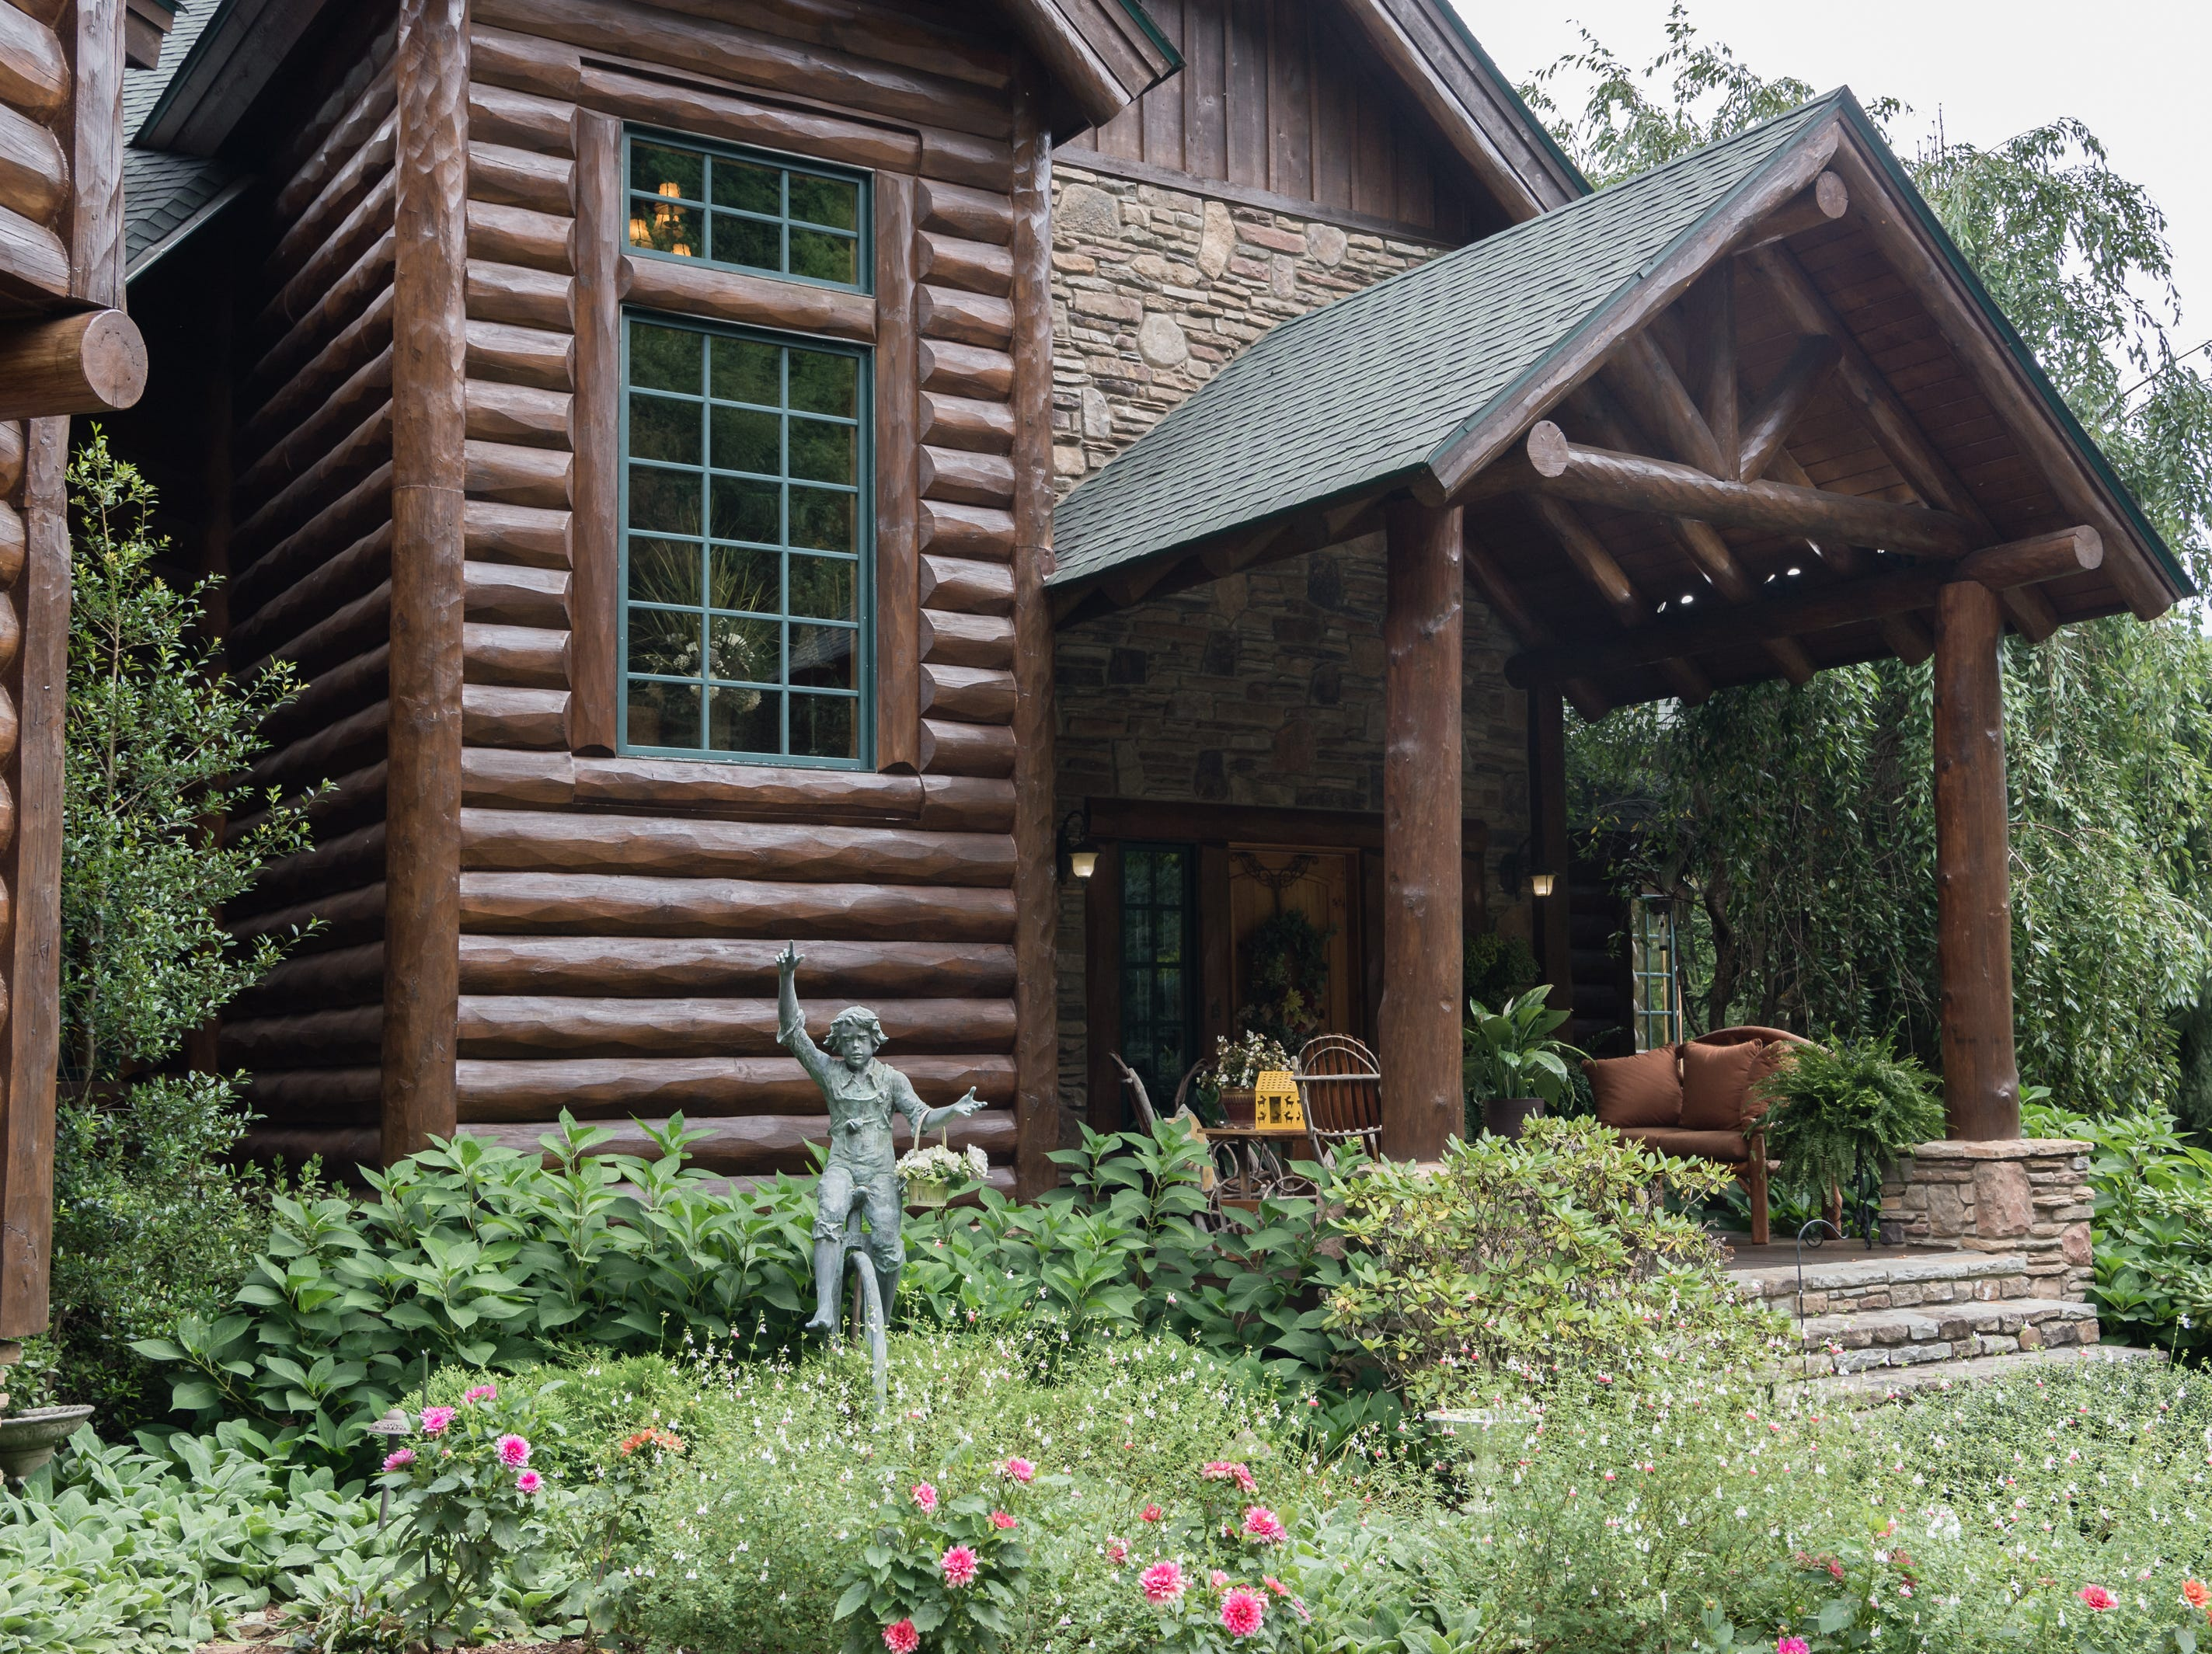 The front entrance of Dan and Belle Fangmeyer's log cabin in Waynesville.